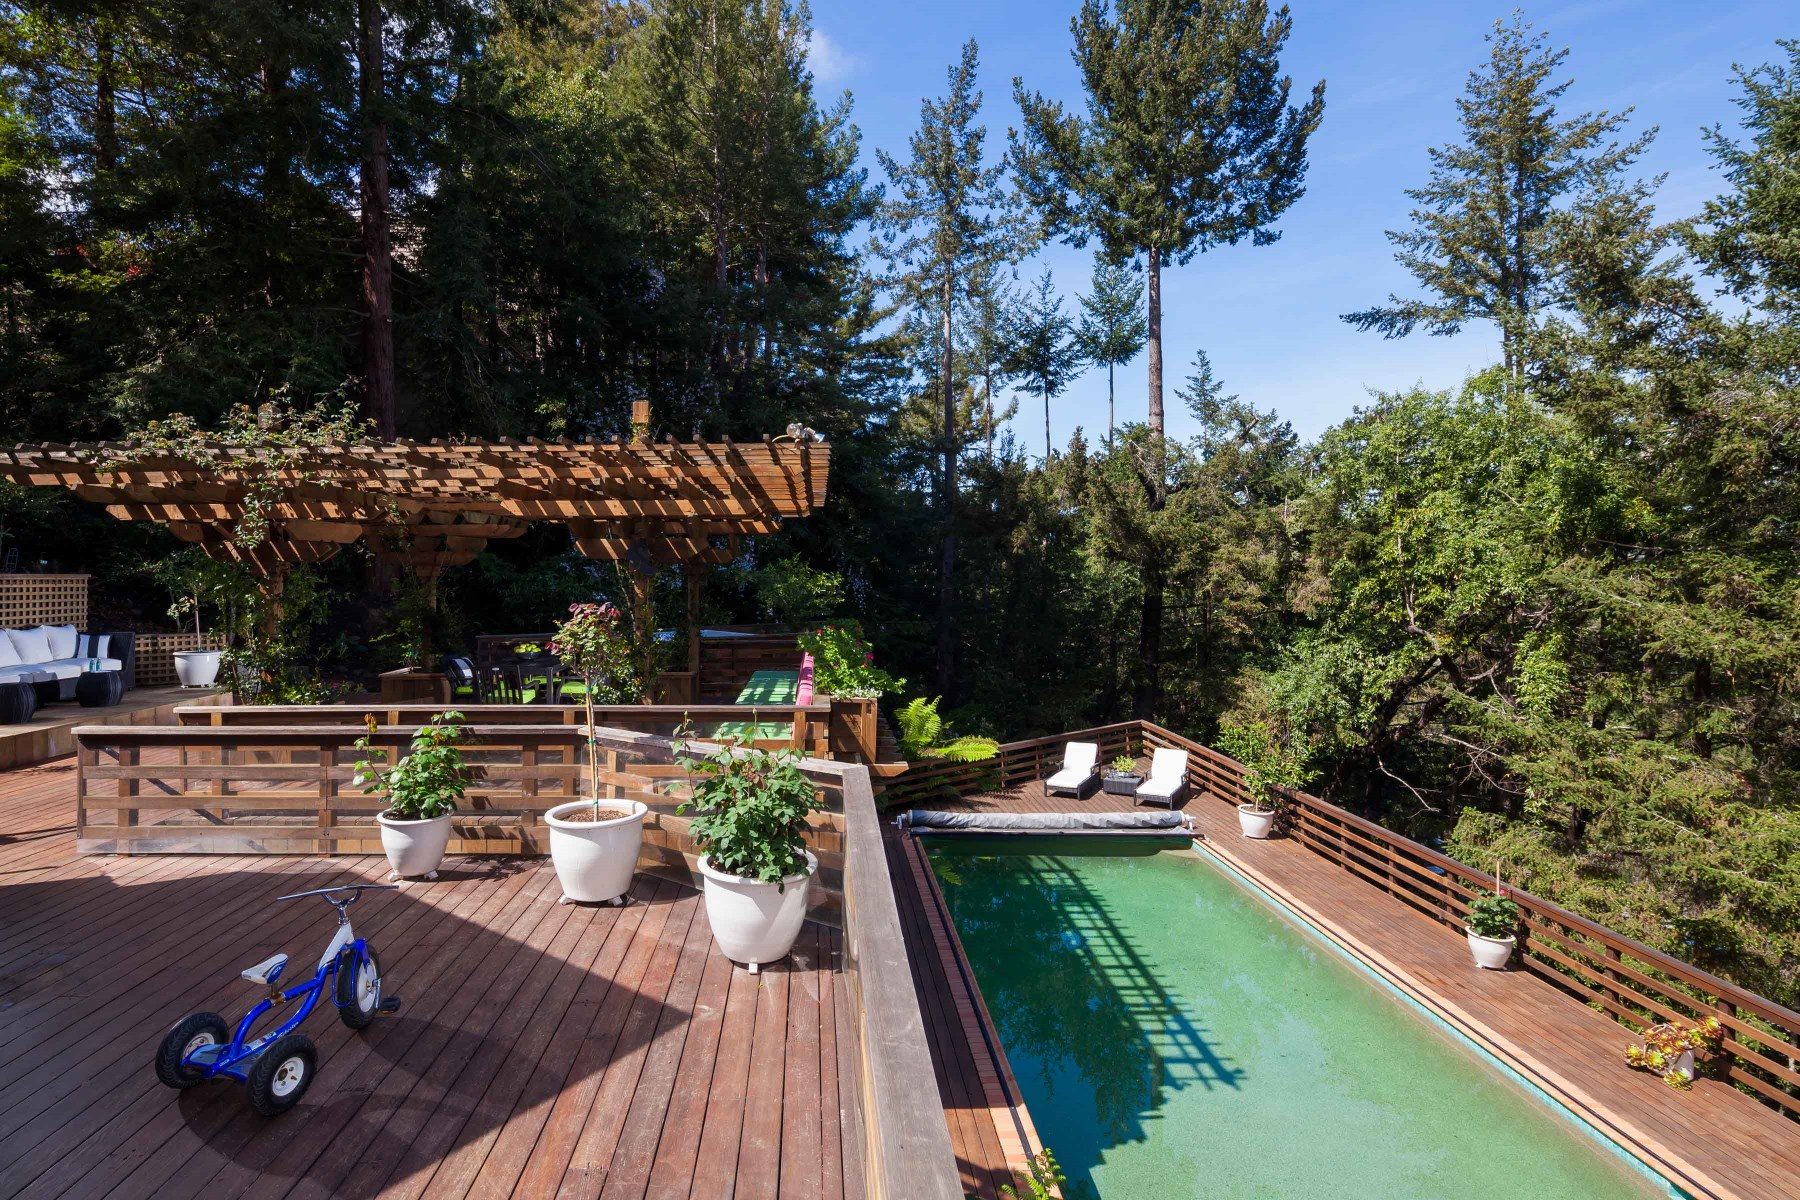 Single Family Home for Sale at In Coveted Kent Woodlands Kentfield, California 94904 United States